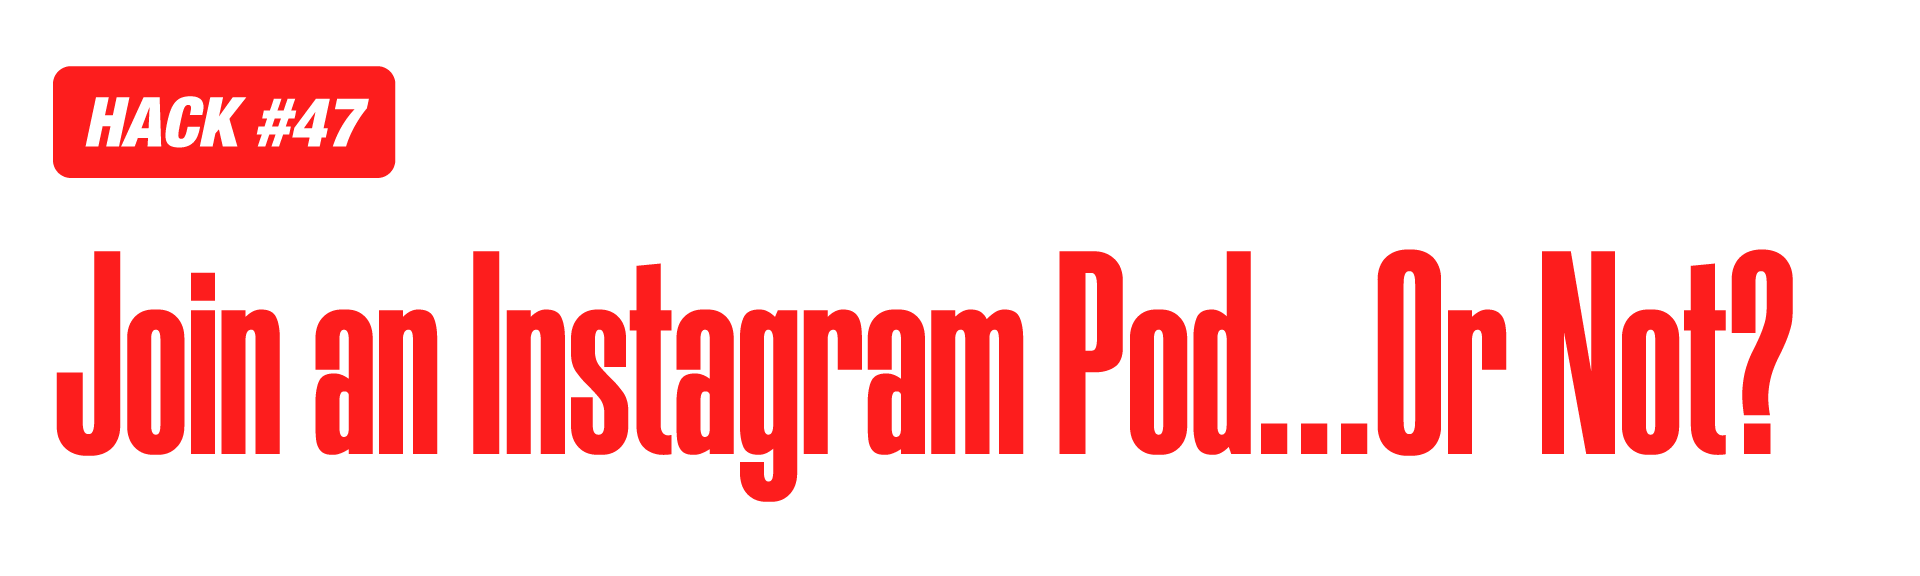 Instagram marketing hack of podcasts